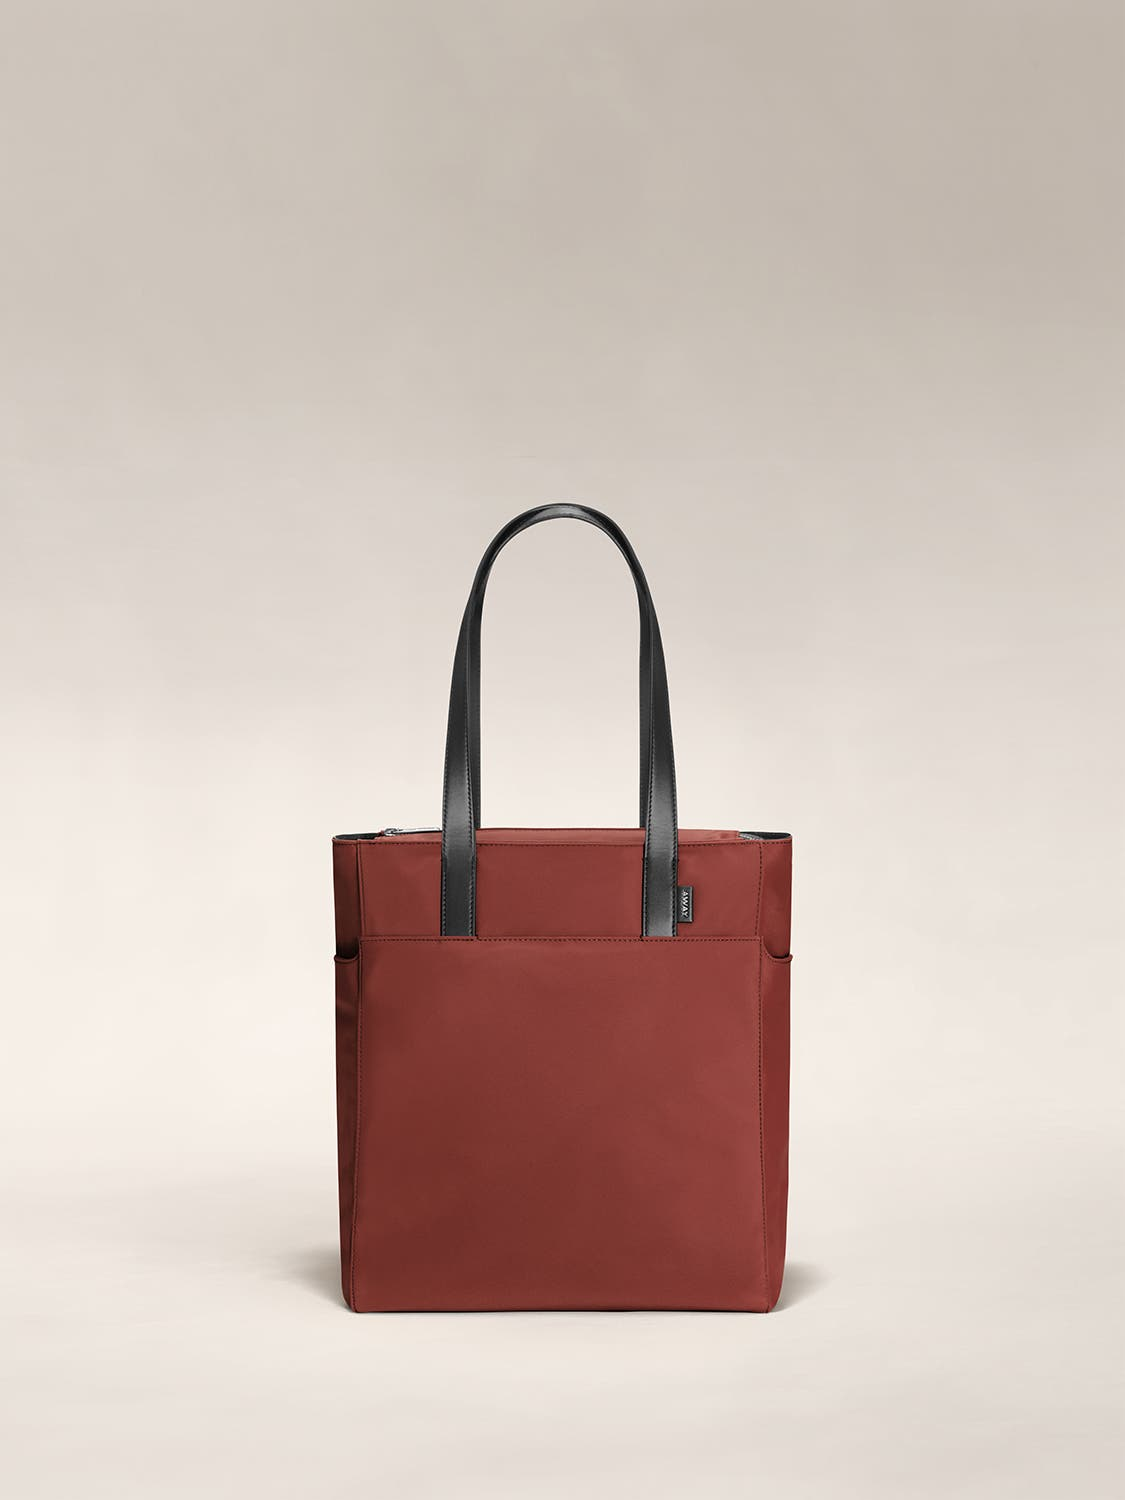 A brick red zip tote with leather handles raised.